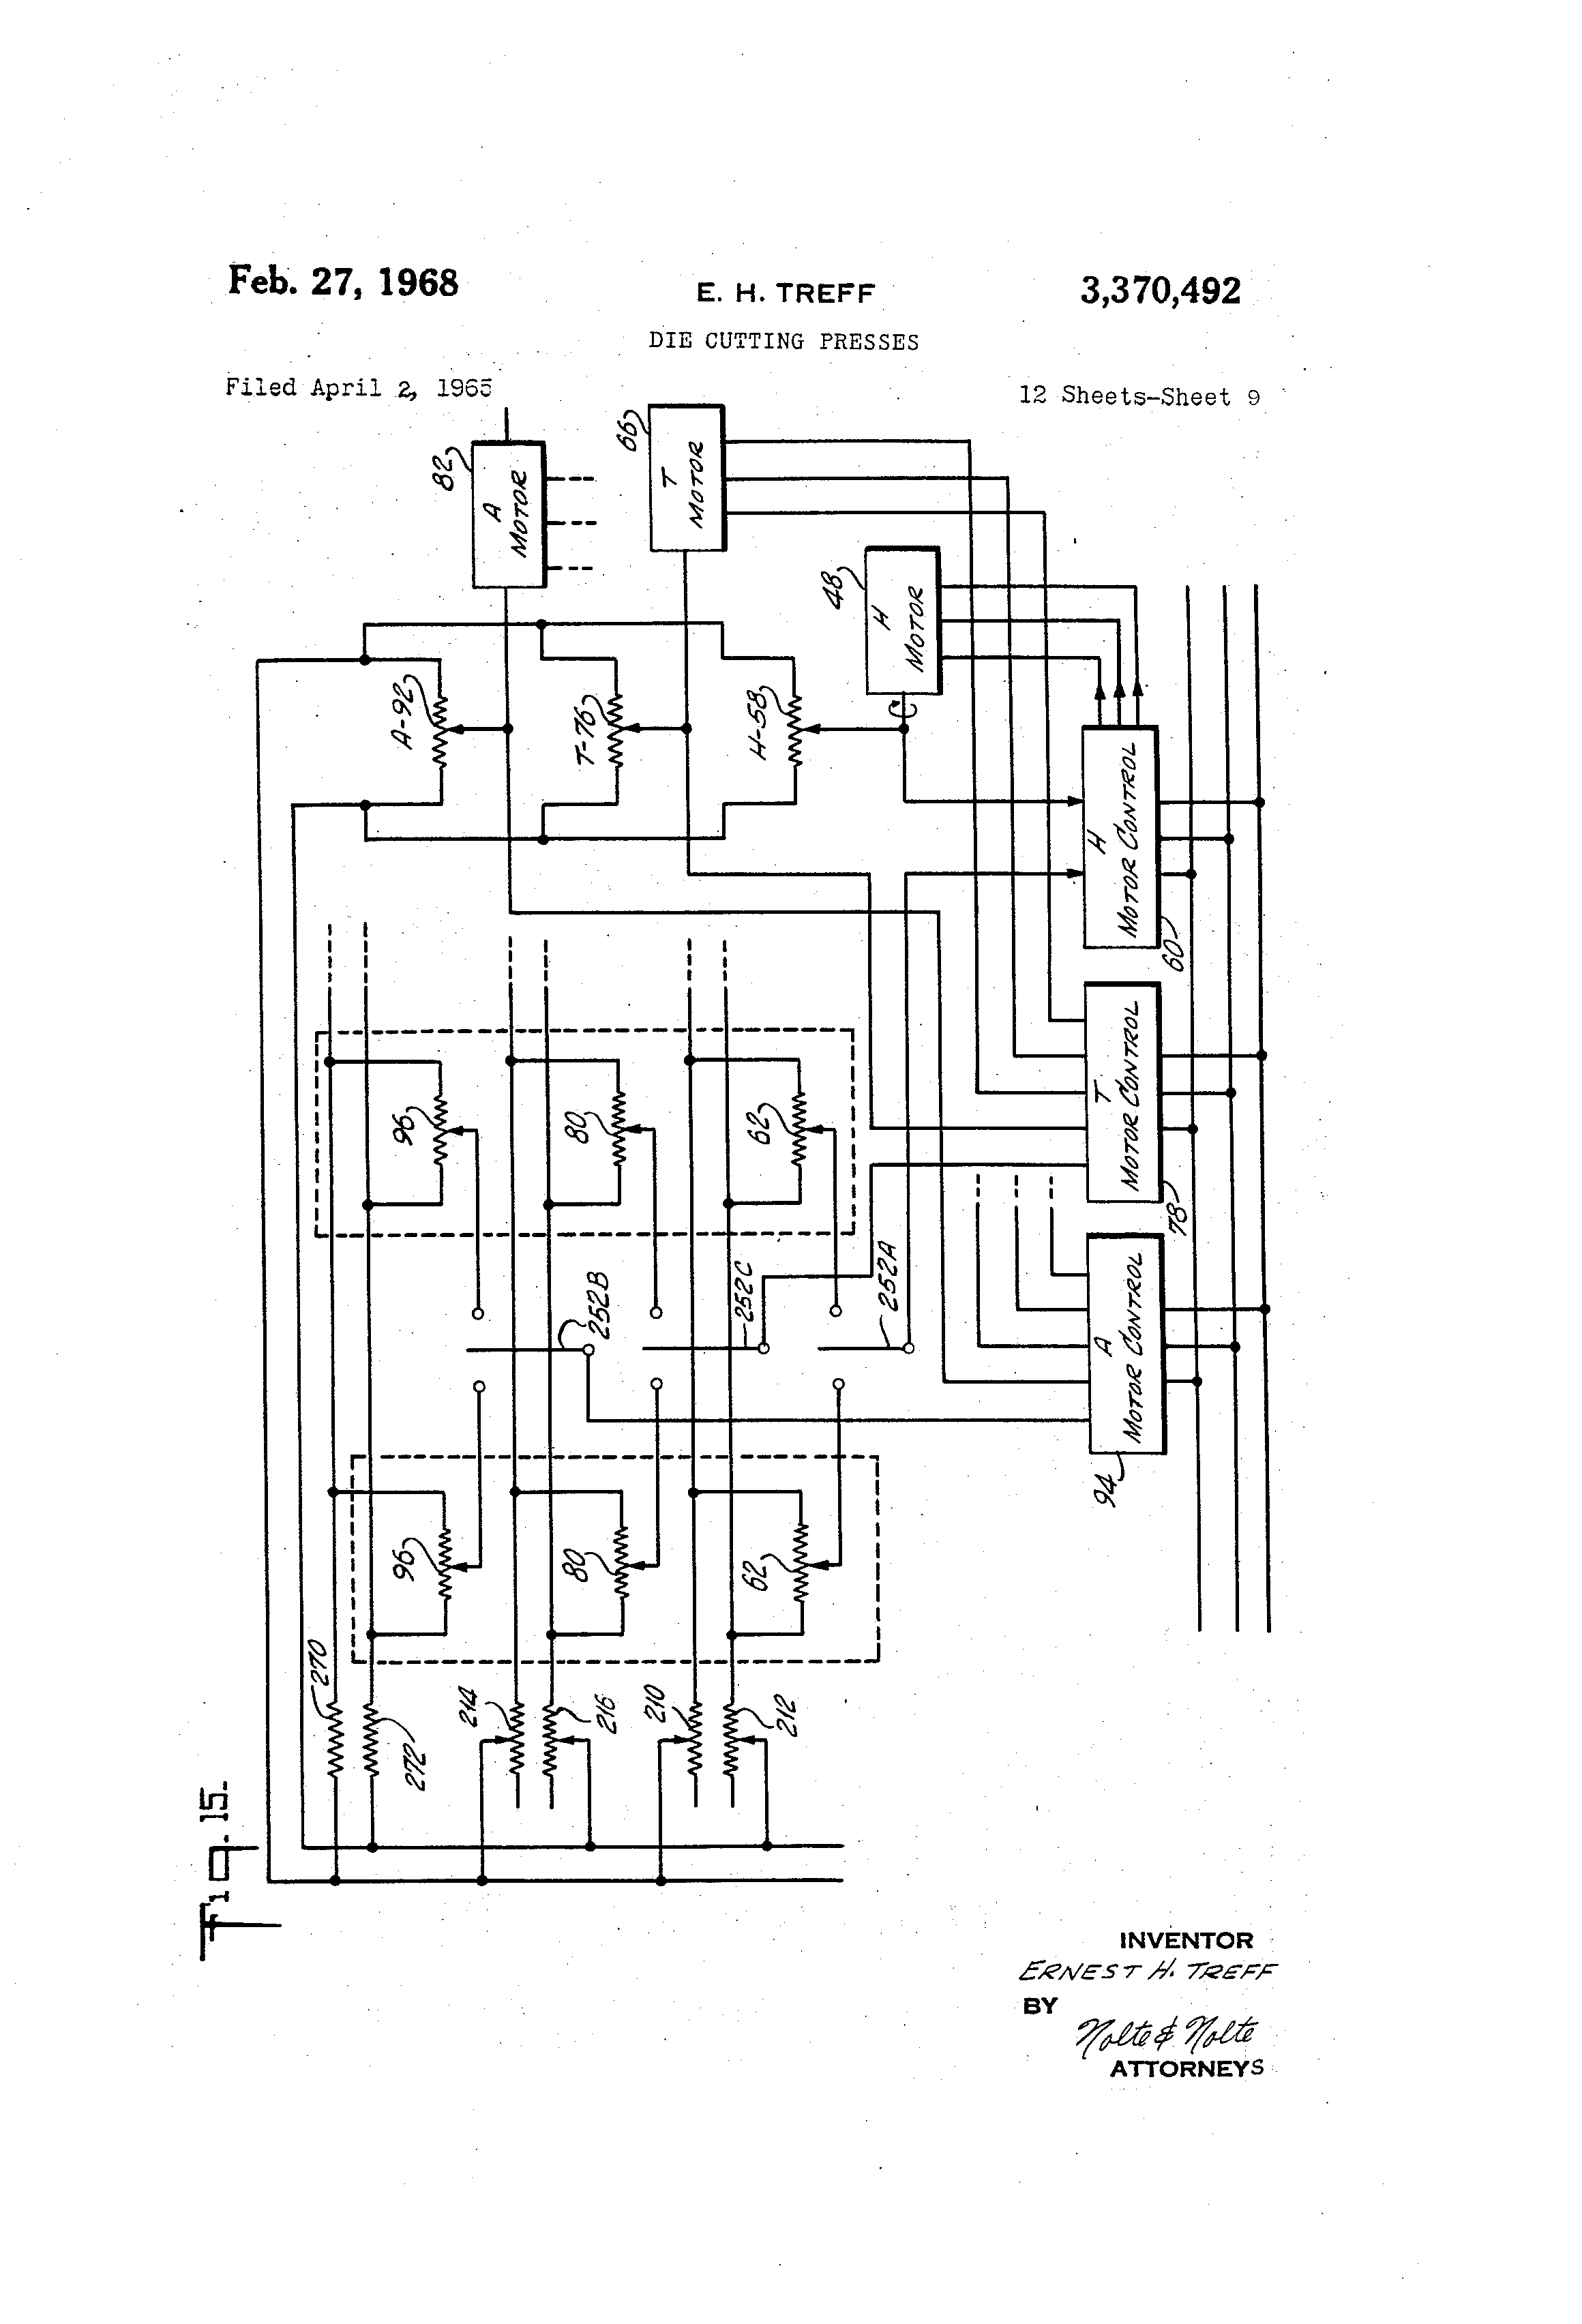 US3370492 8 patent us3370492 die cutting presses google patents stamping press wiring diagrams at soozxer.org